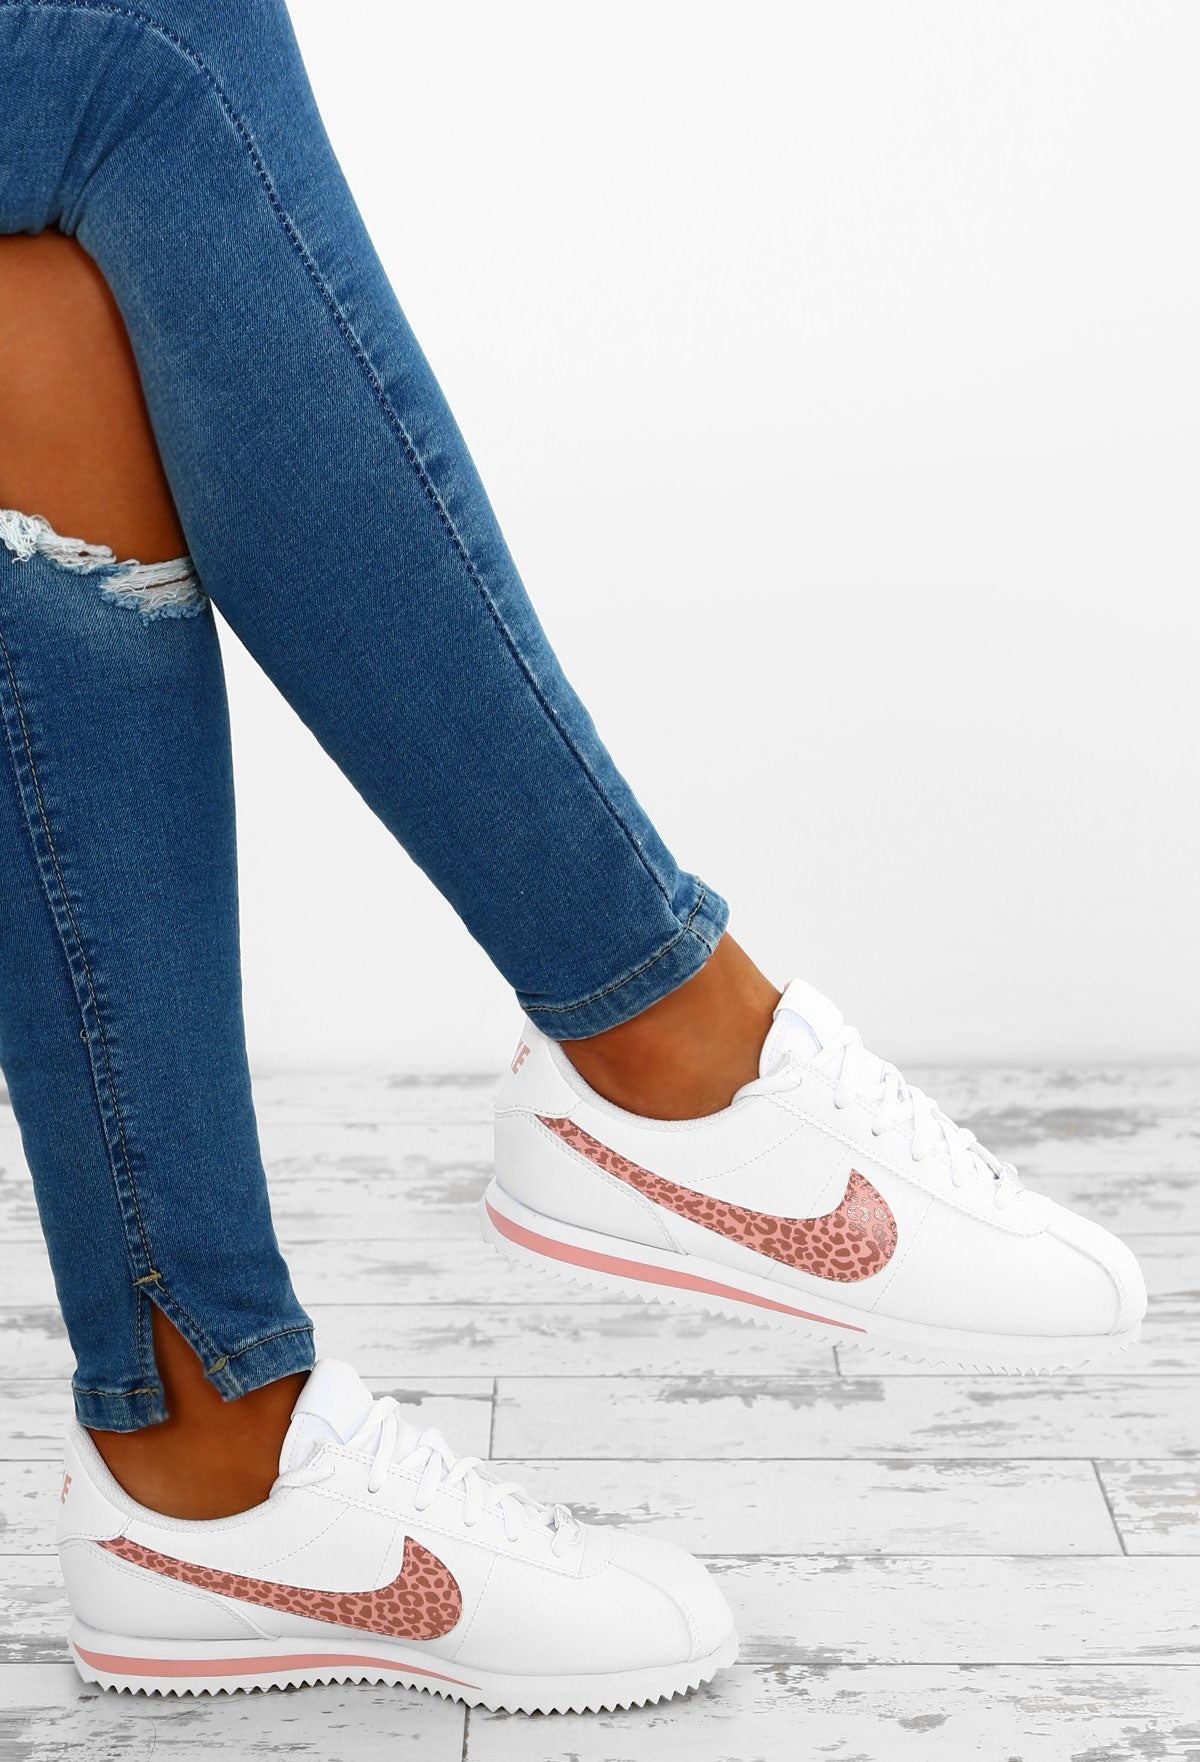 new style dcaf7 e7489 Nike Cortez White and Pink Leopard Trainers – Pink Boutique UK